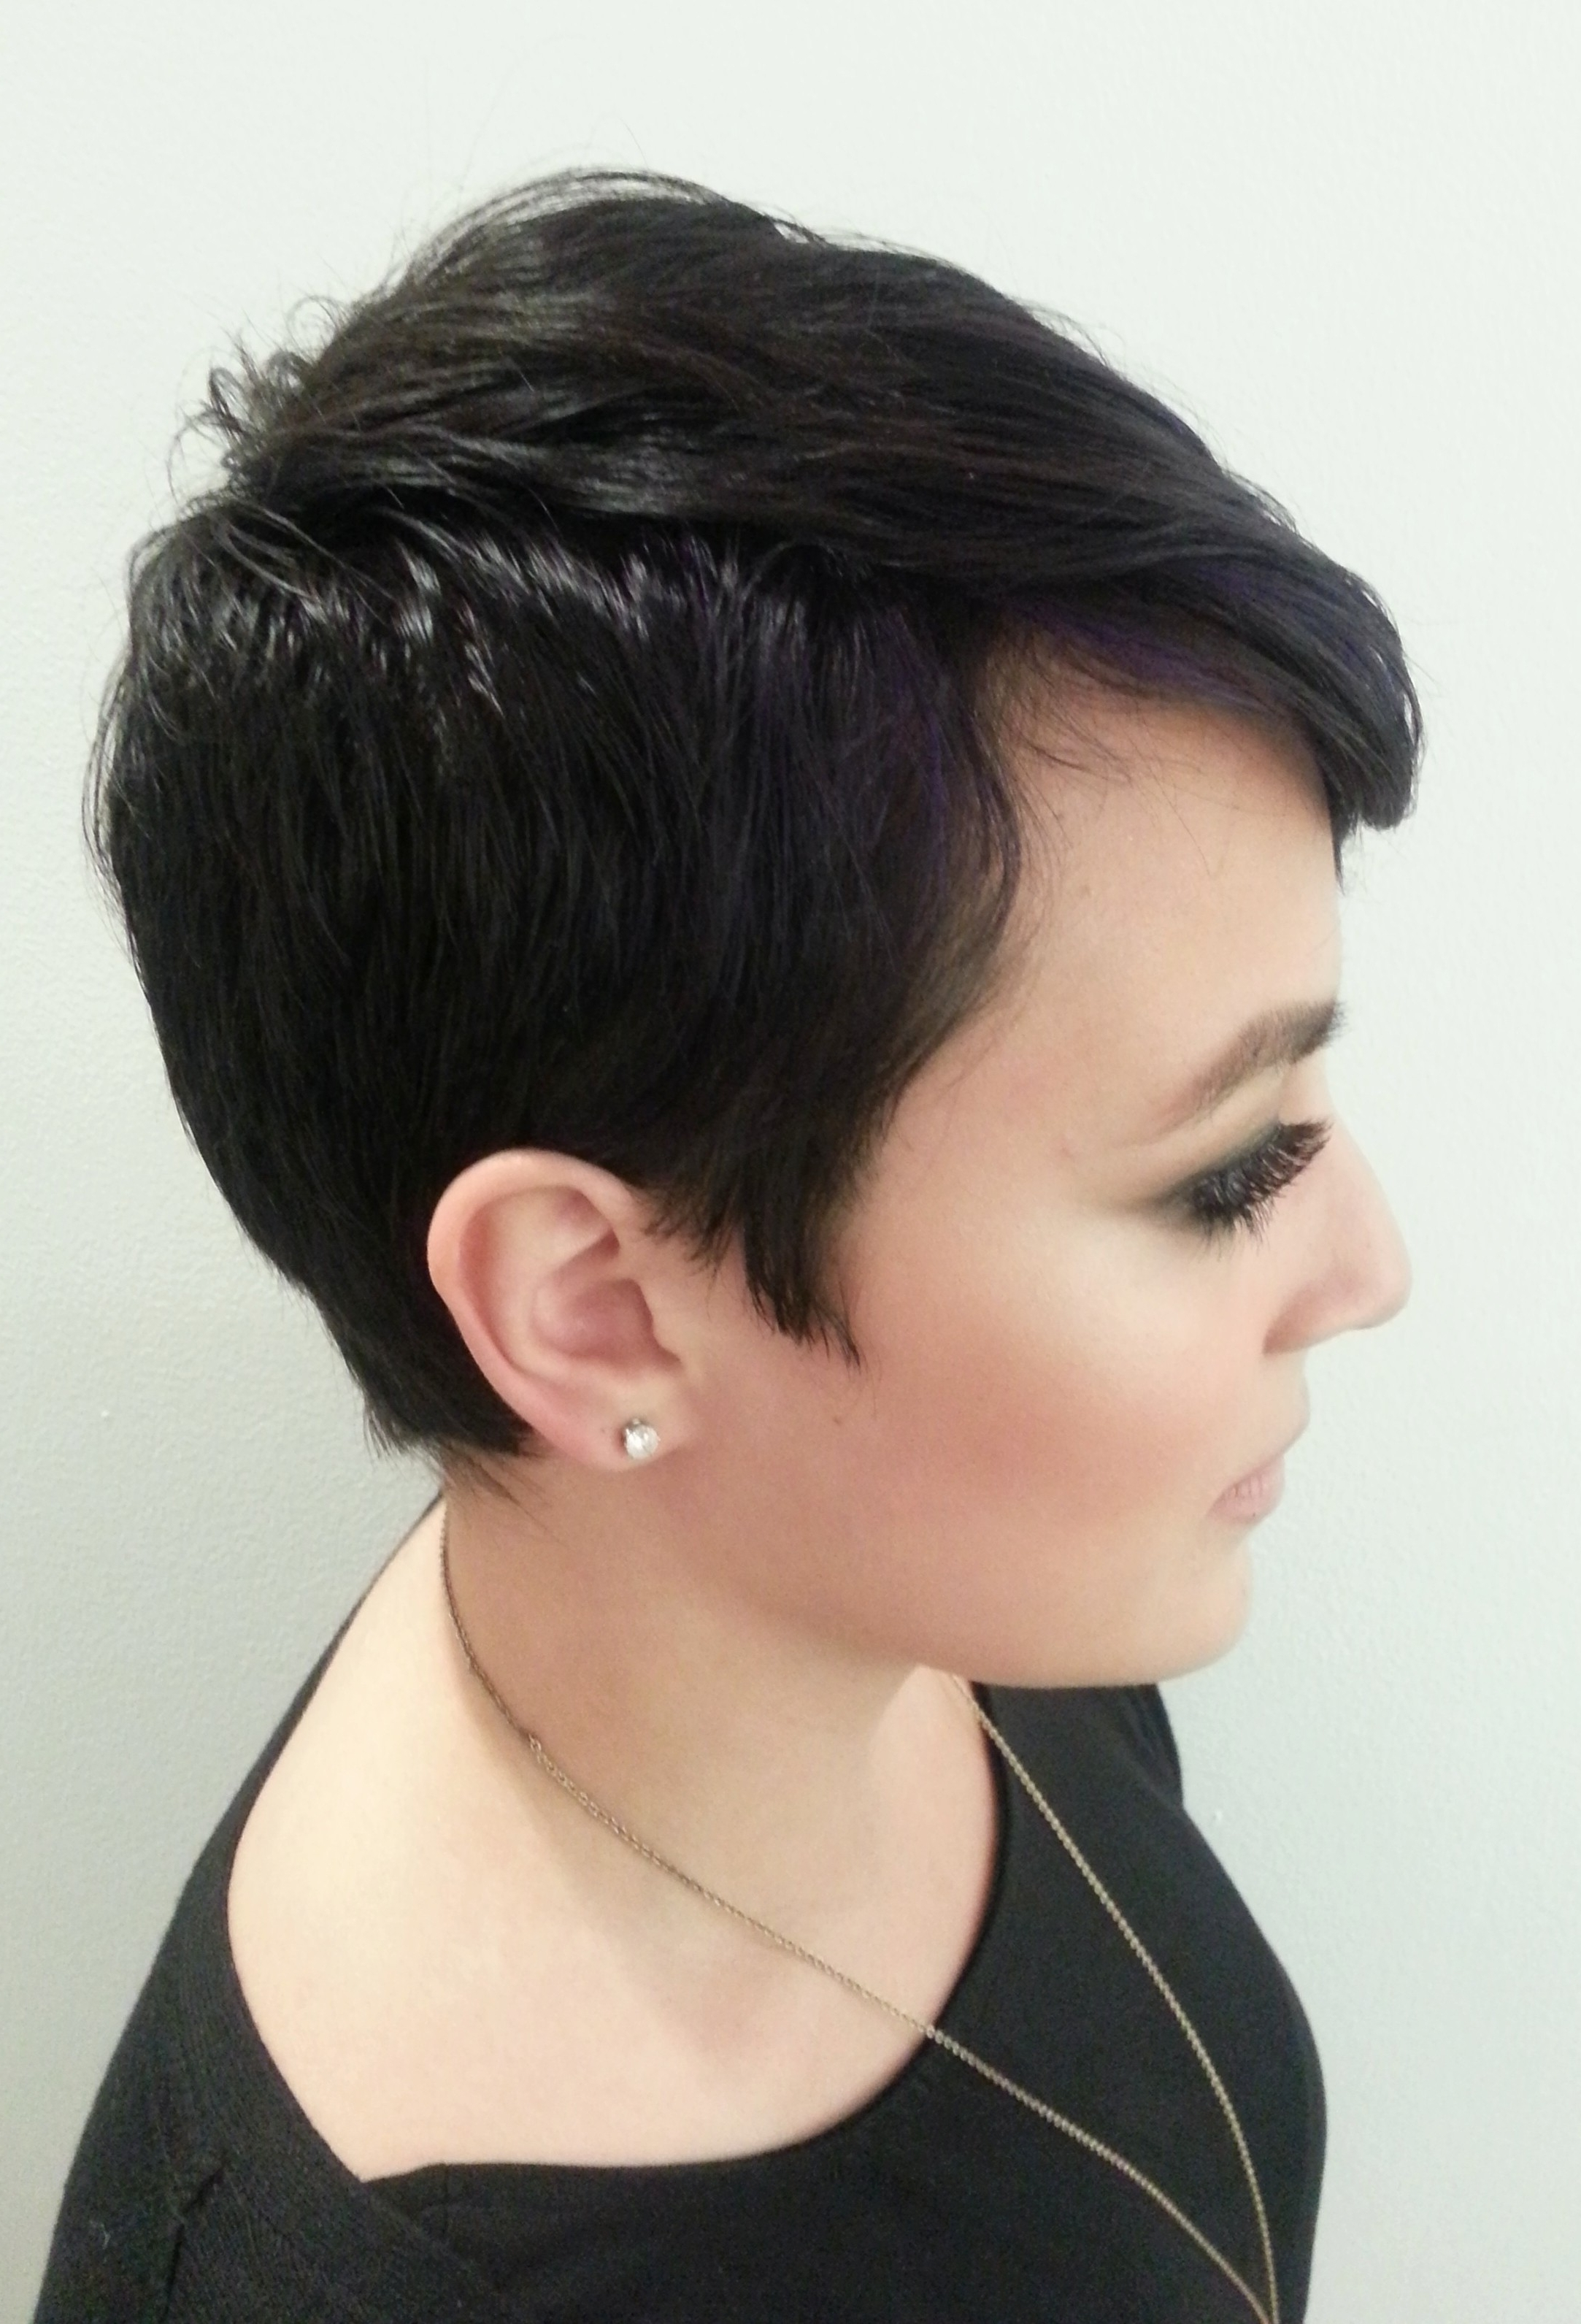 Explore Gallery Of Pixie Hairstyles For Thick Curly Hair Showing 10